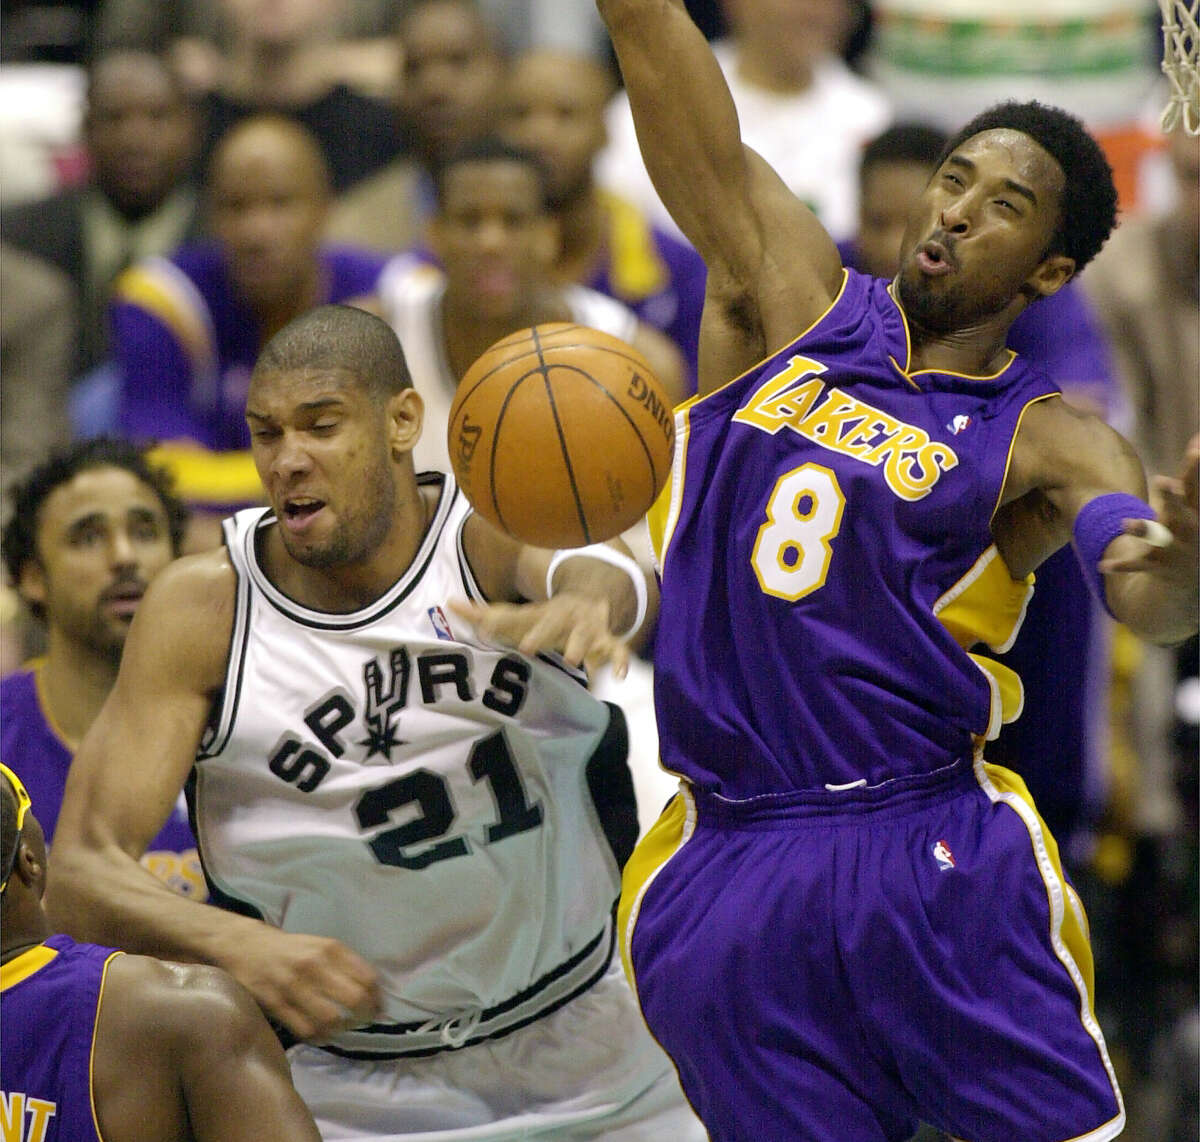 39 point margin Lakers 111, Spurs 72 May 25, 2001 - Western Conference Finals in Los Angeles